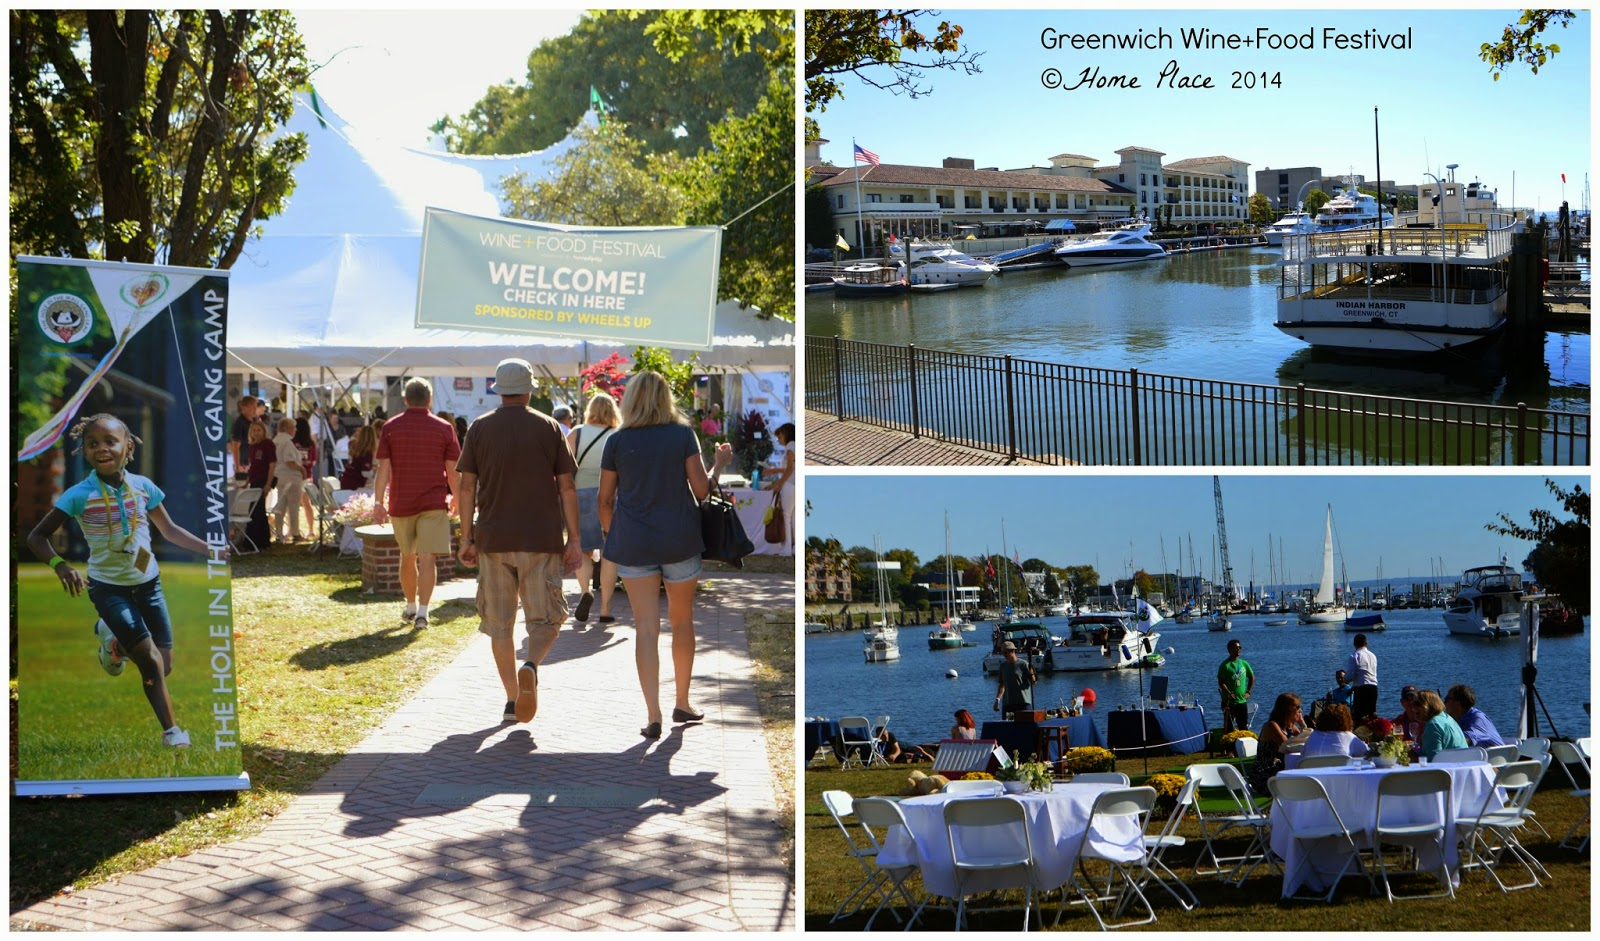 #GWFF2014 - Greenwich Wine + Food Festival 2014